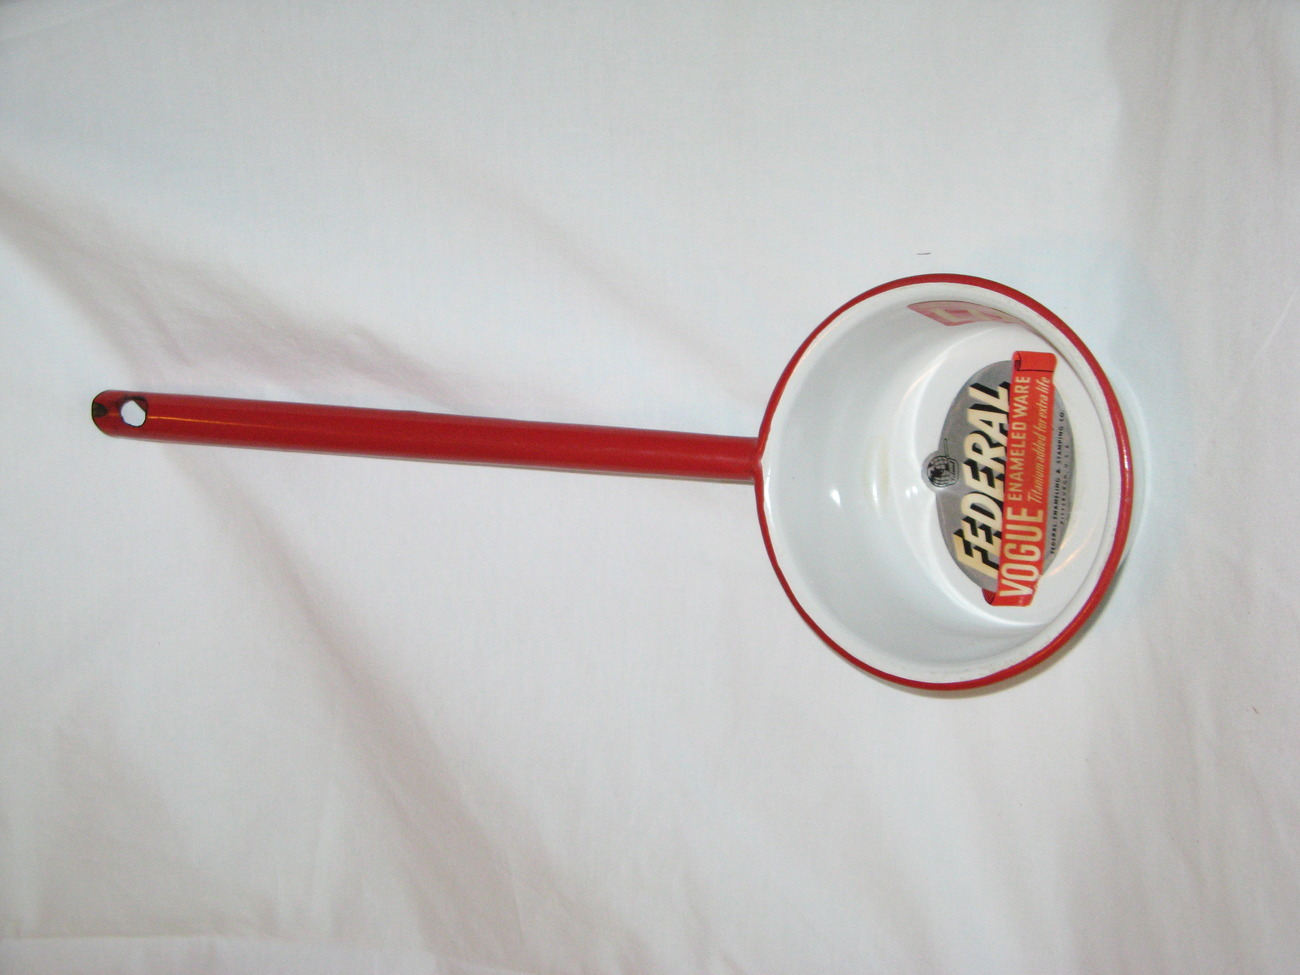 Federal (VOGUE) Red on White Enameled Ware long handeled dipper. BRAND NEW